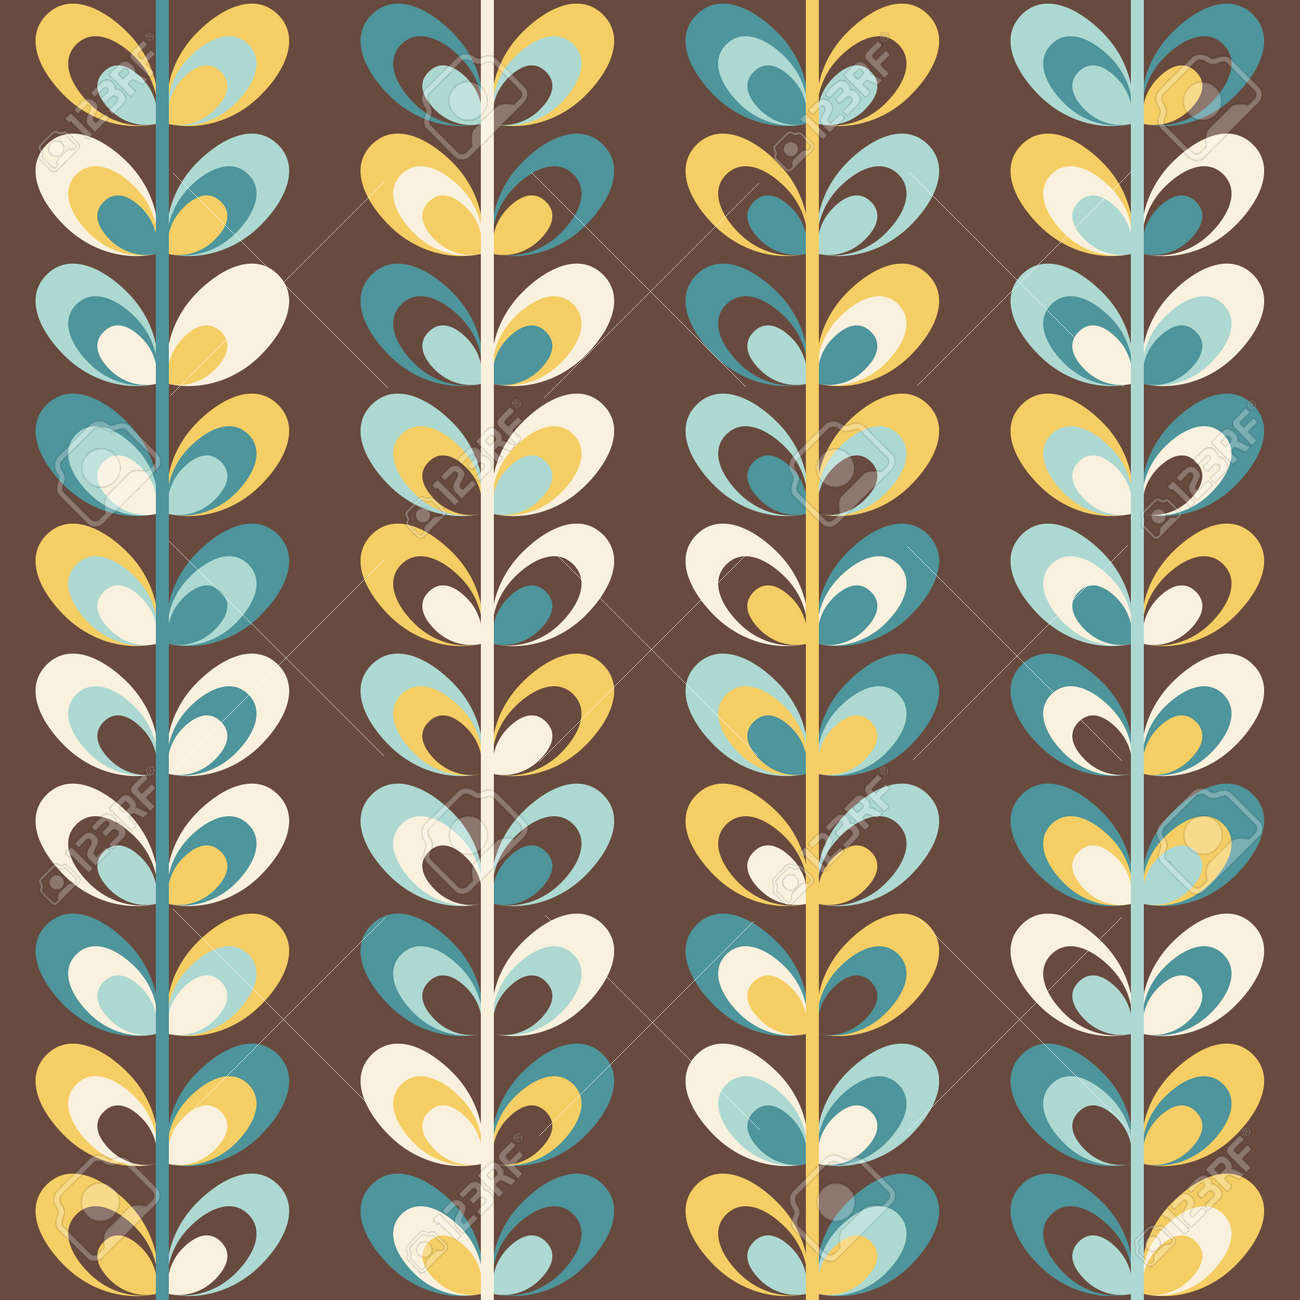 Midcentury Geometric Retro Background Vintage Brown Mustard